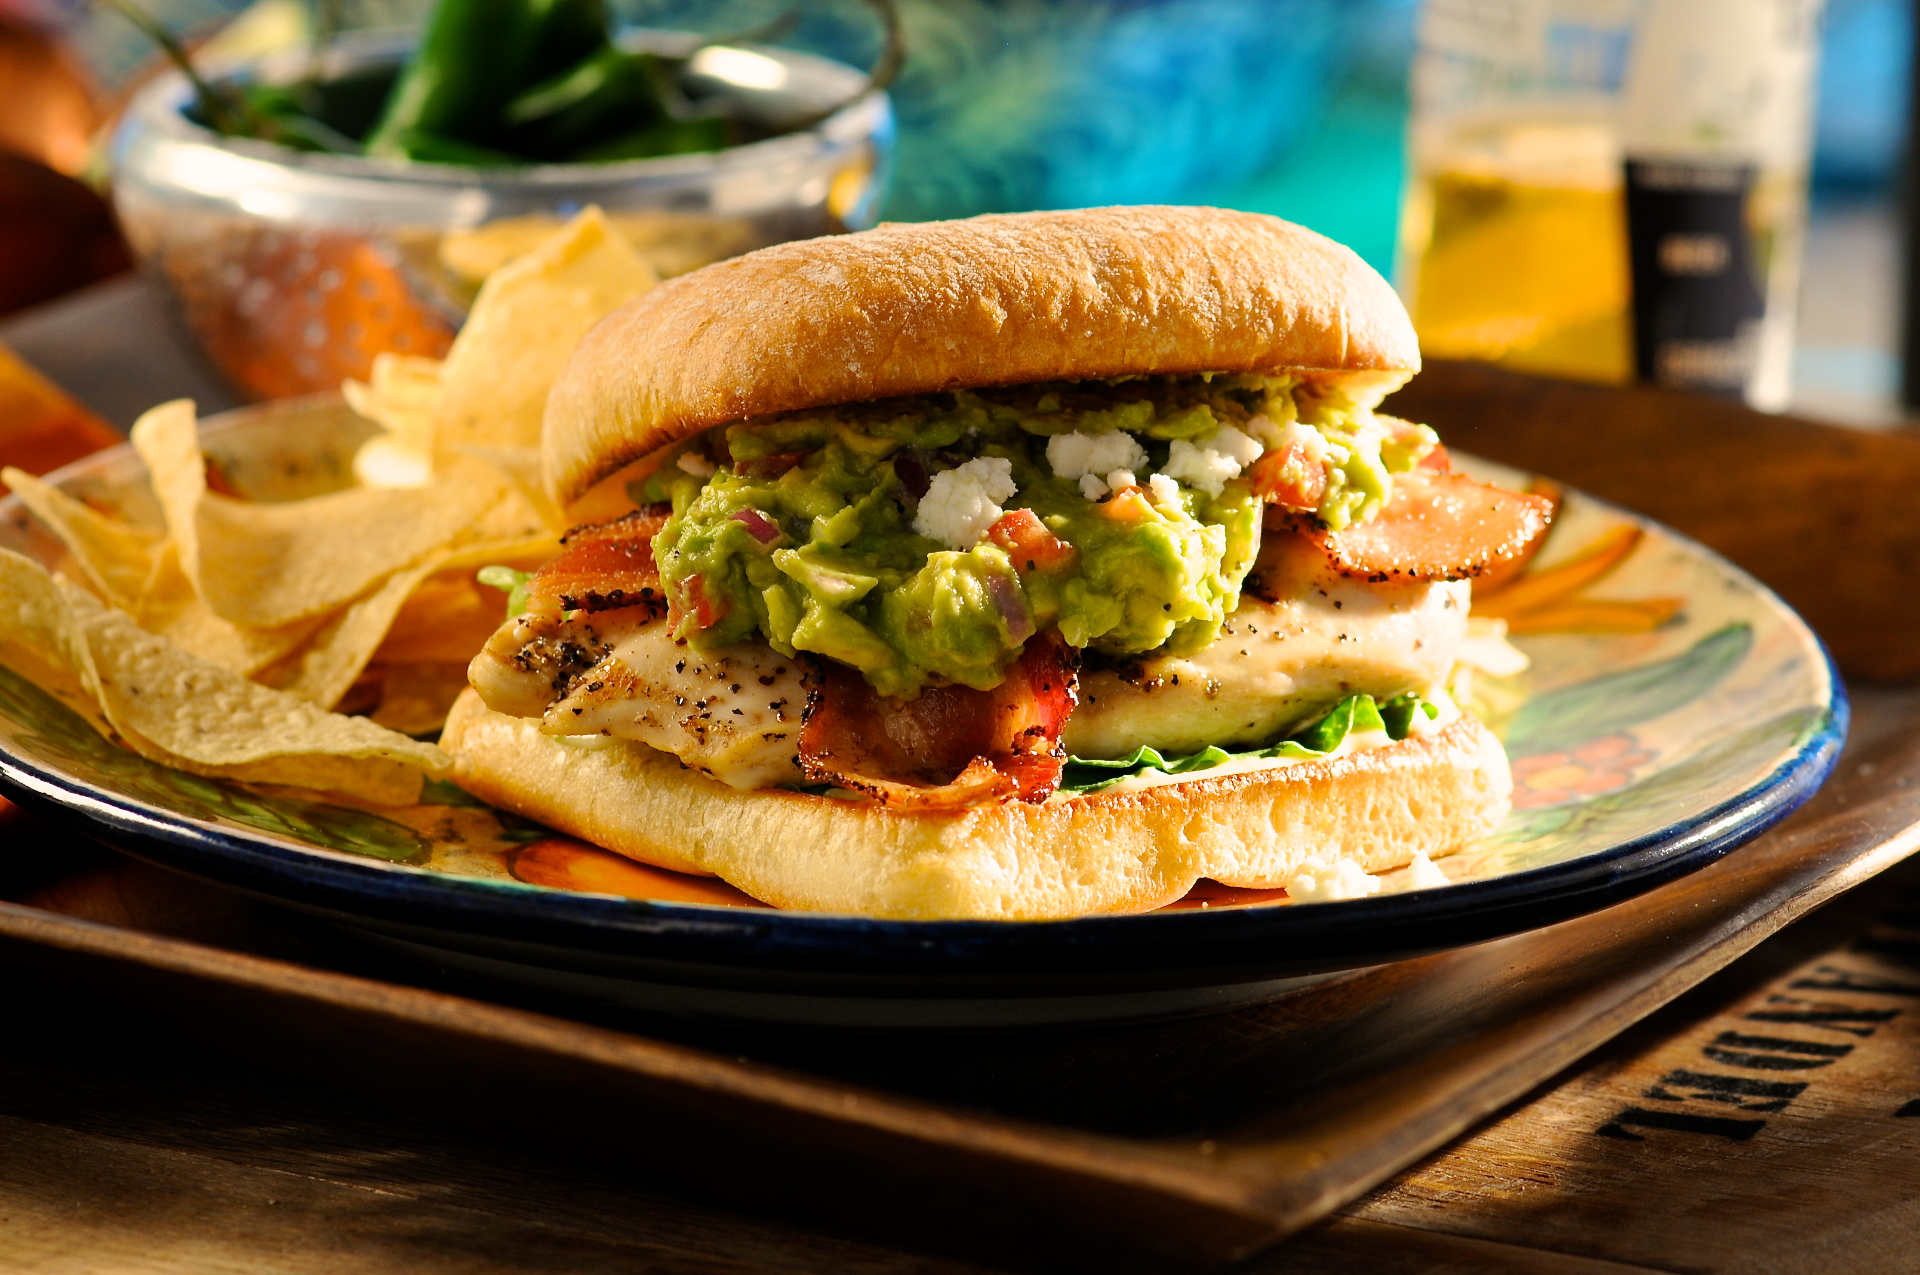 Add a Mexican accent to your run-of-the-mill club sandwich with a scoop of fresh guacamole. The crumbled cojita cheese adds another nice layer of flavor. Don't skimp here... it's worth it.